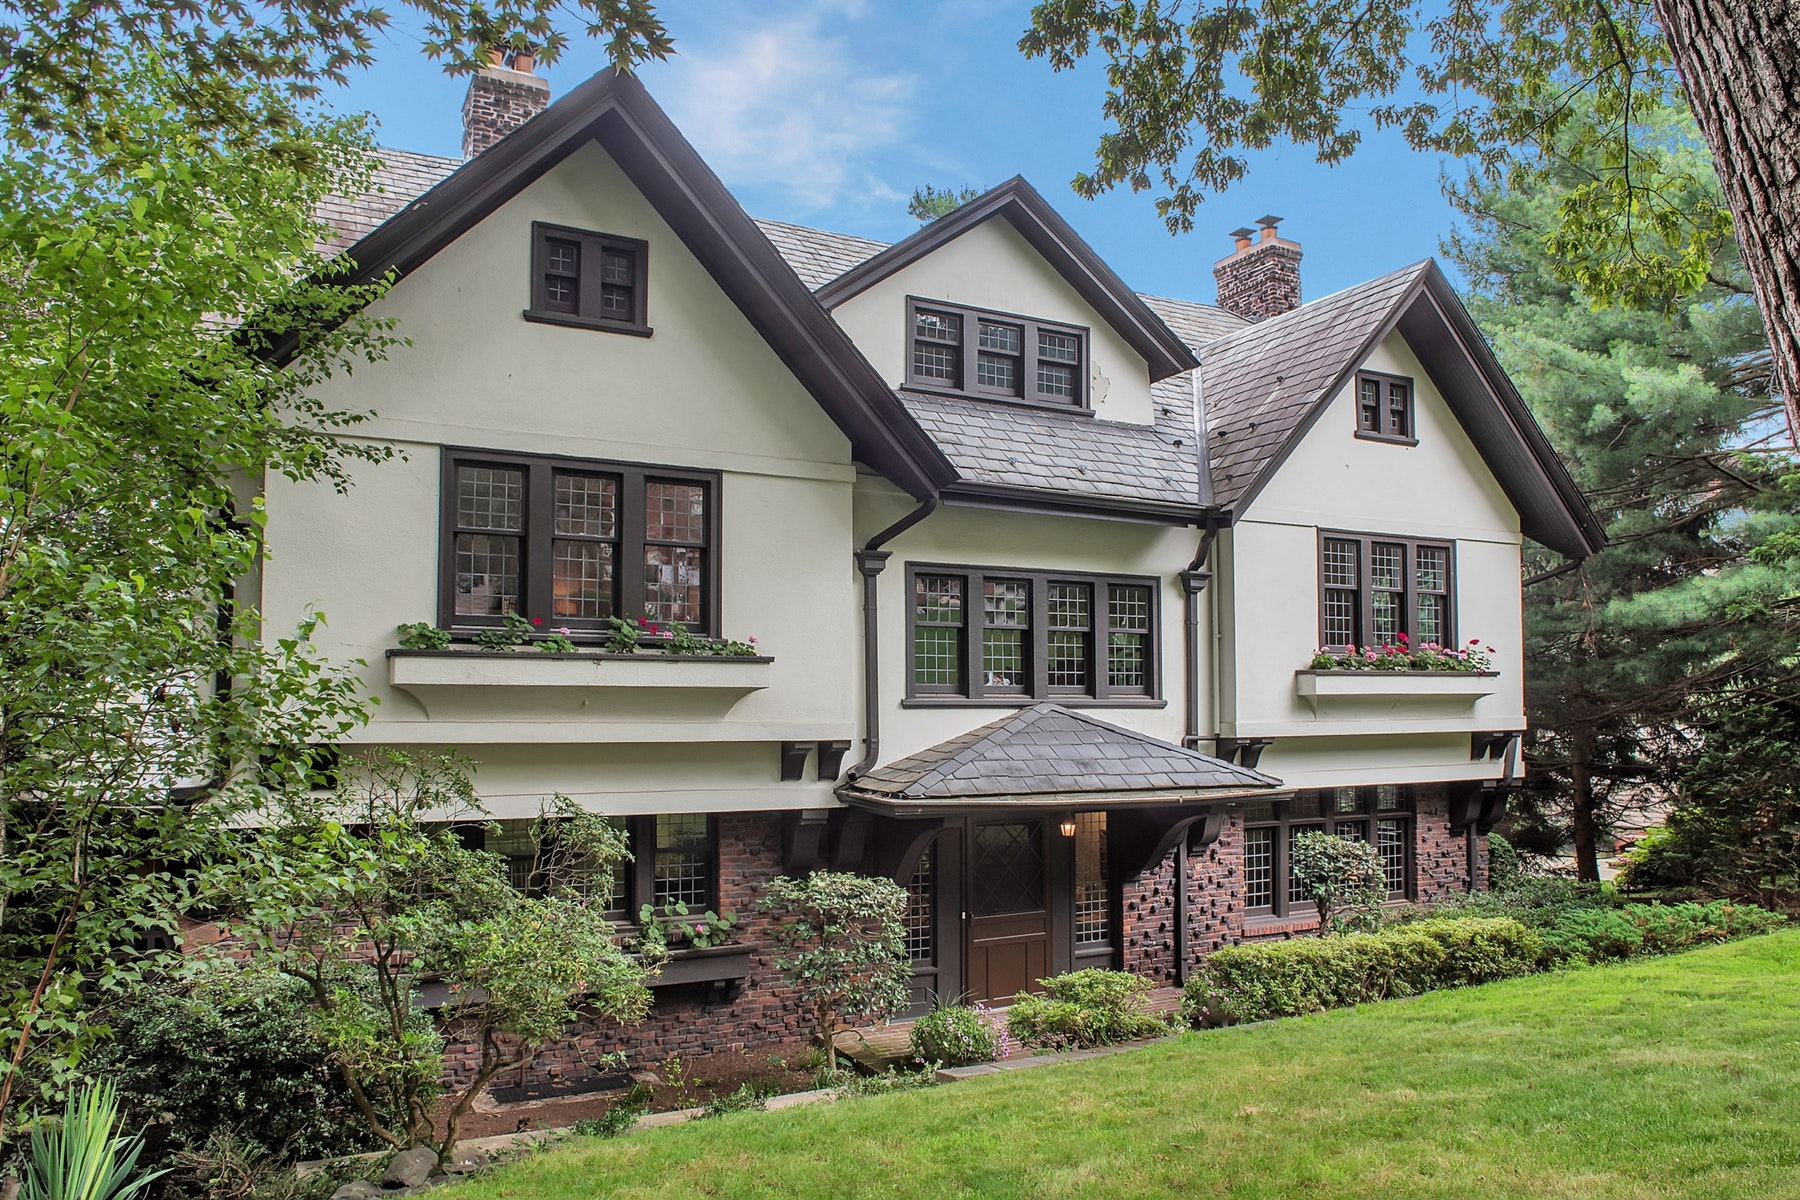 Single Family Homes for Sale at Grand and Glorious 53 Lloyd Road Montclair, New Jersey 07042 United States